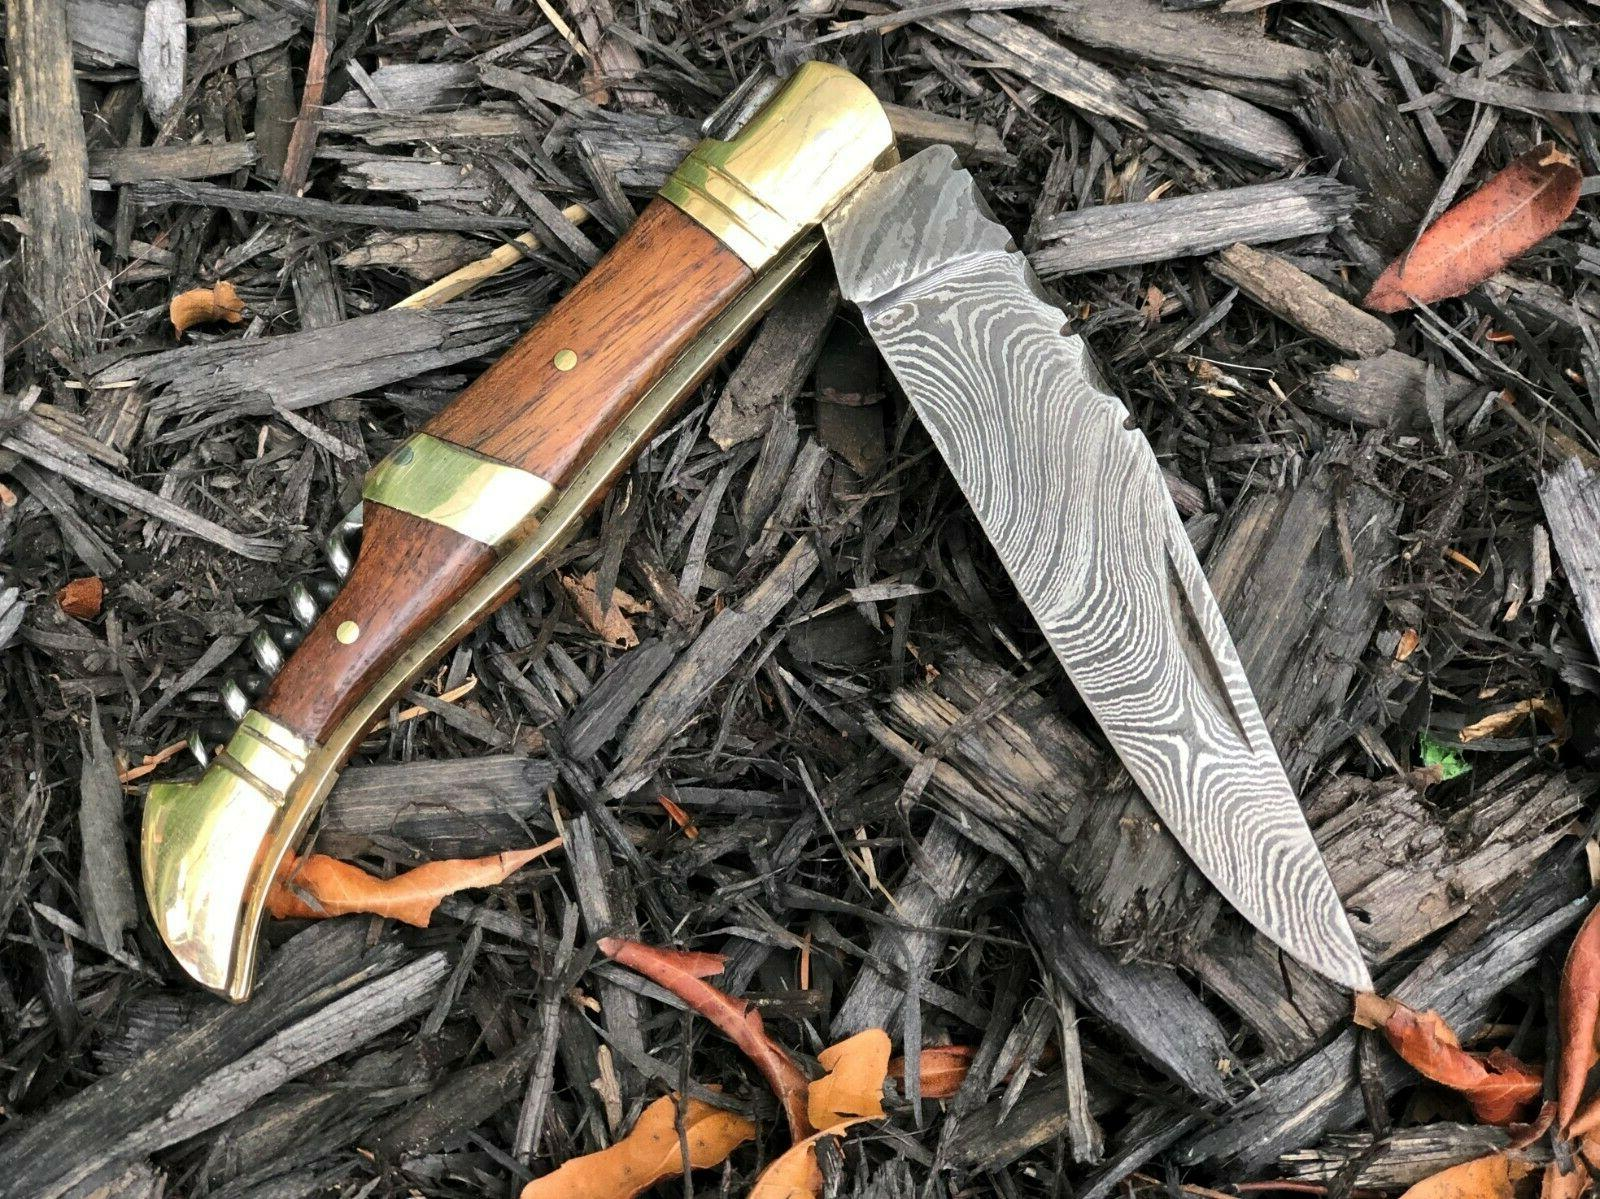 Damascus Knife 100% Handmade Corkscrew Pocket Knives